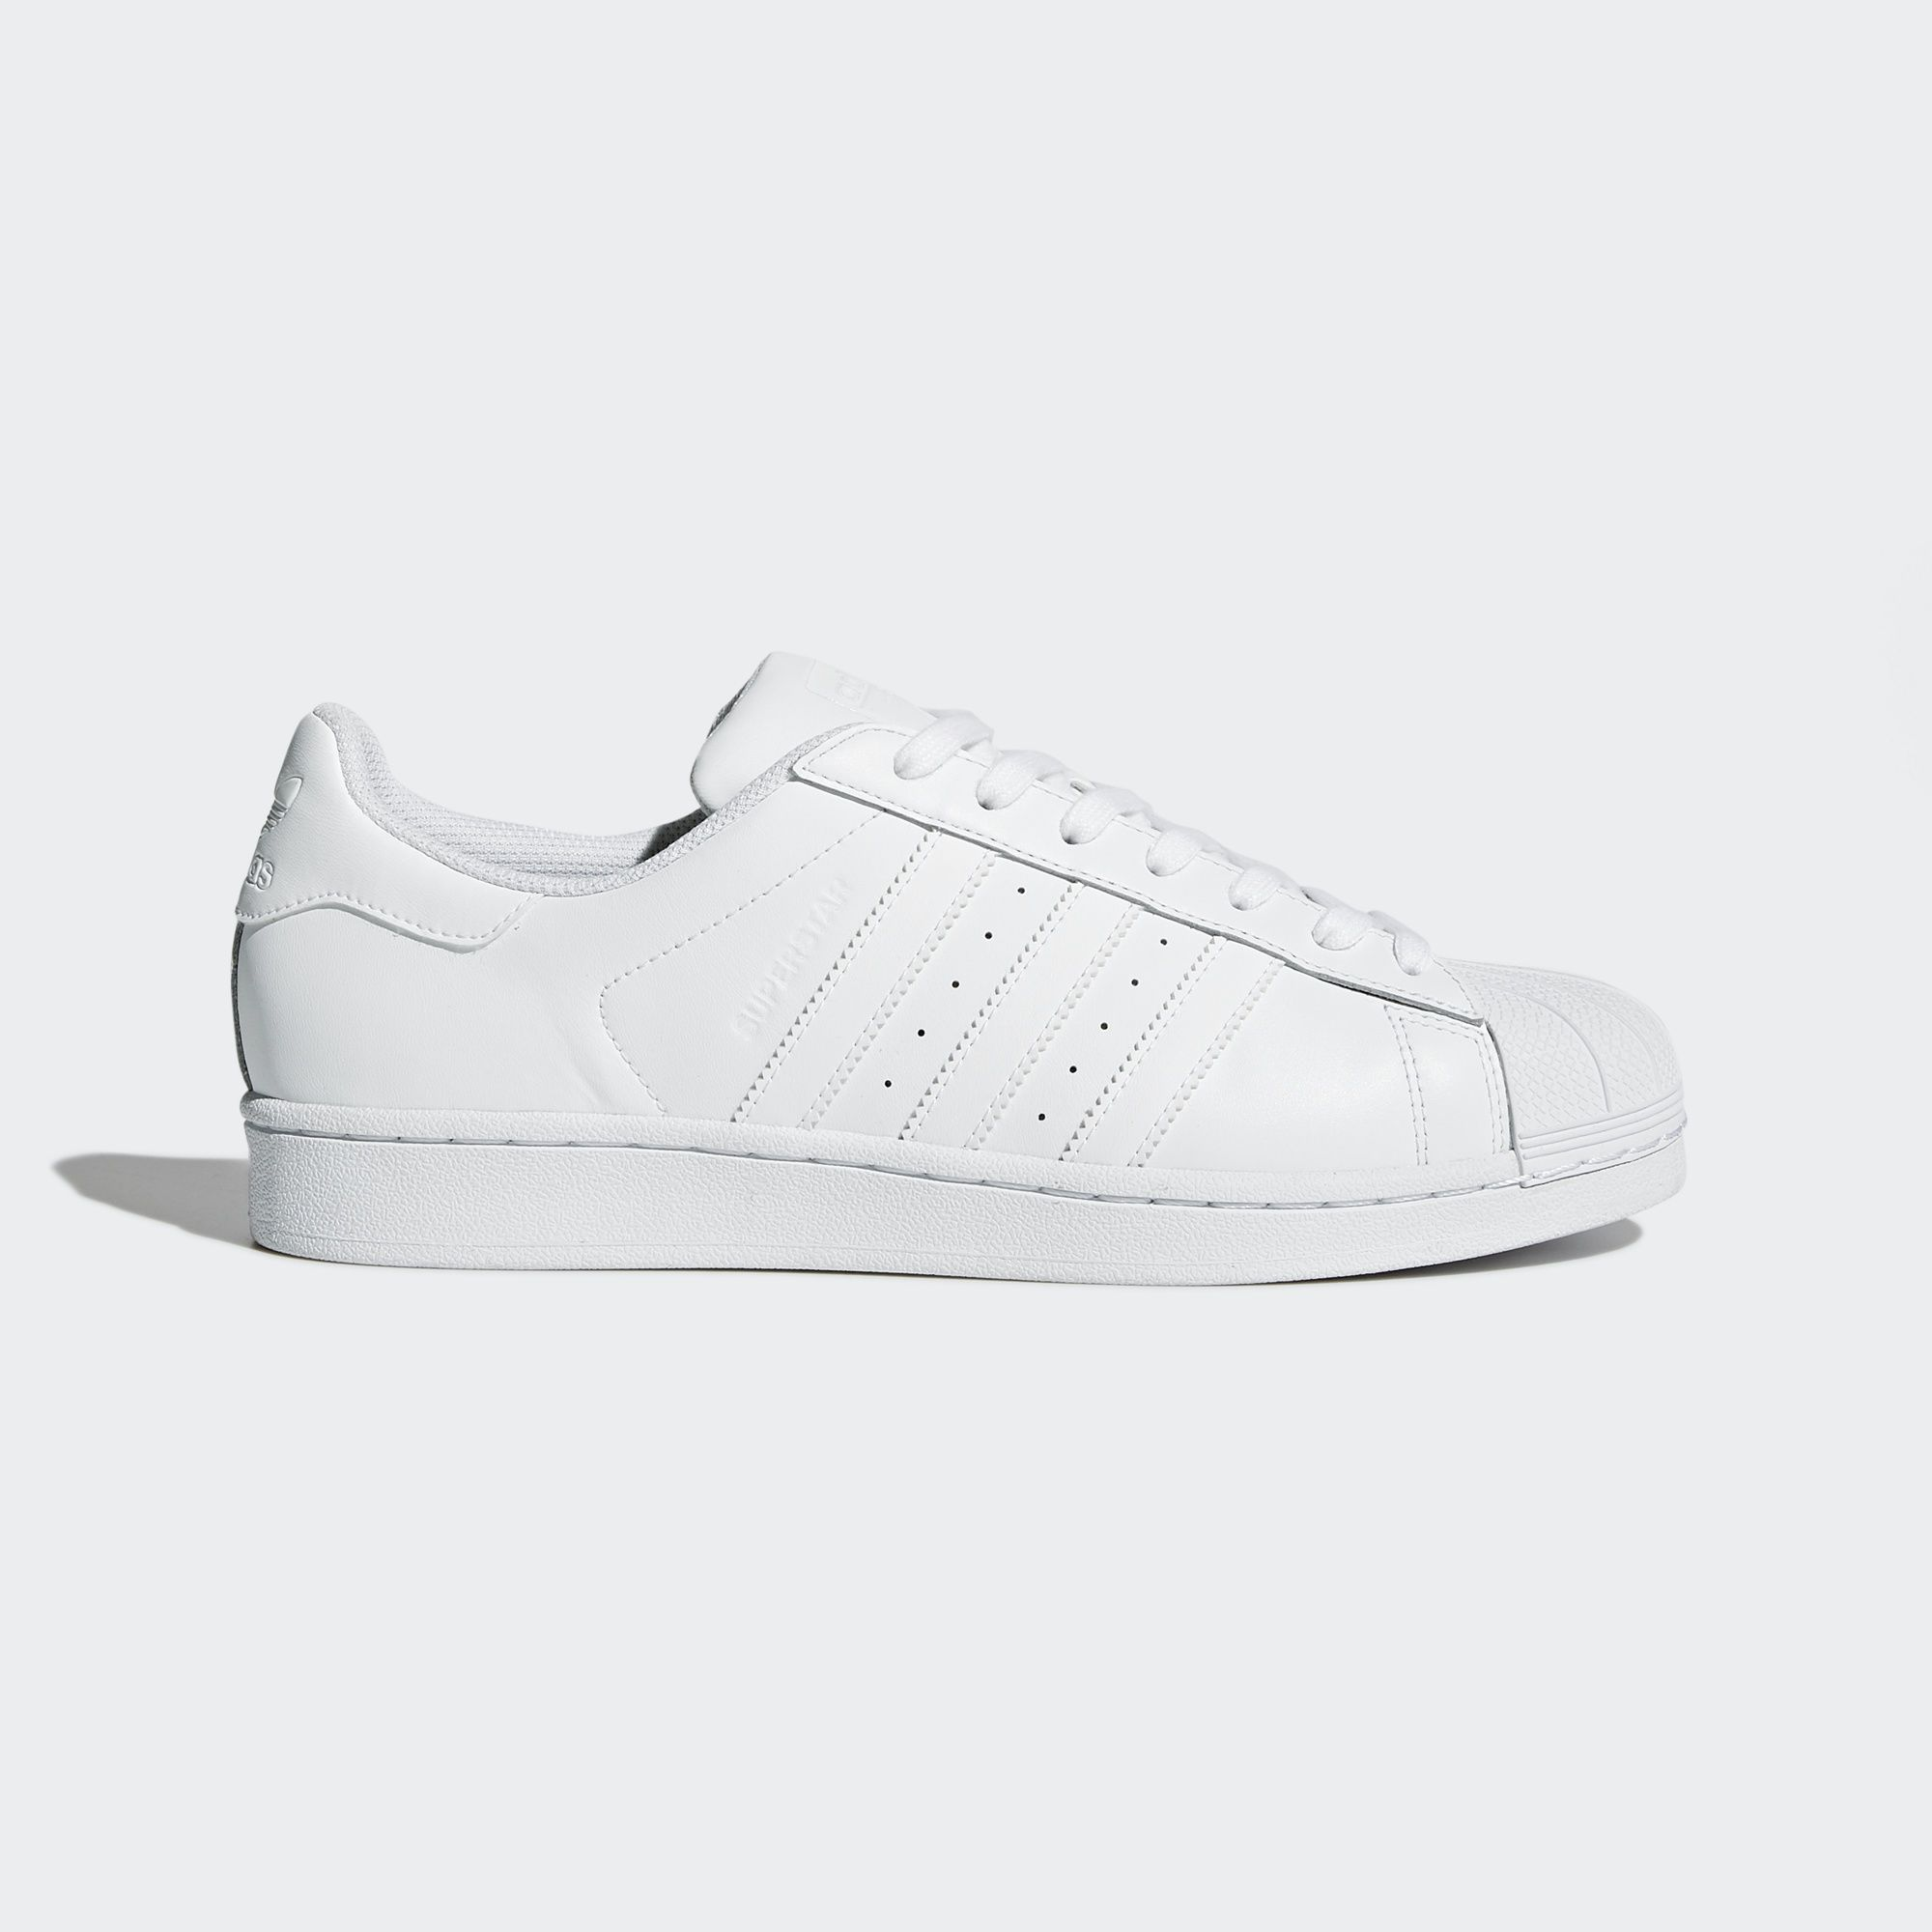 The adidas Superstar shoe debuted in 1969 and quickly lived